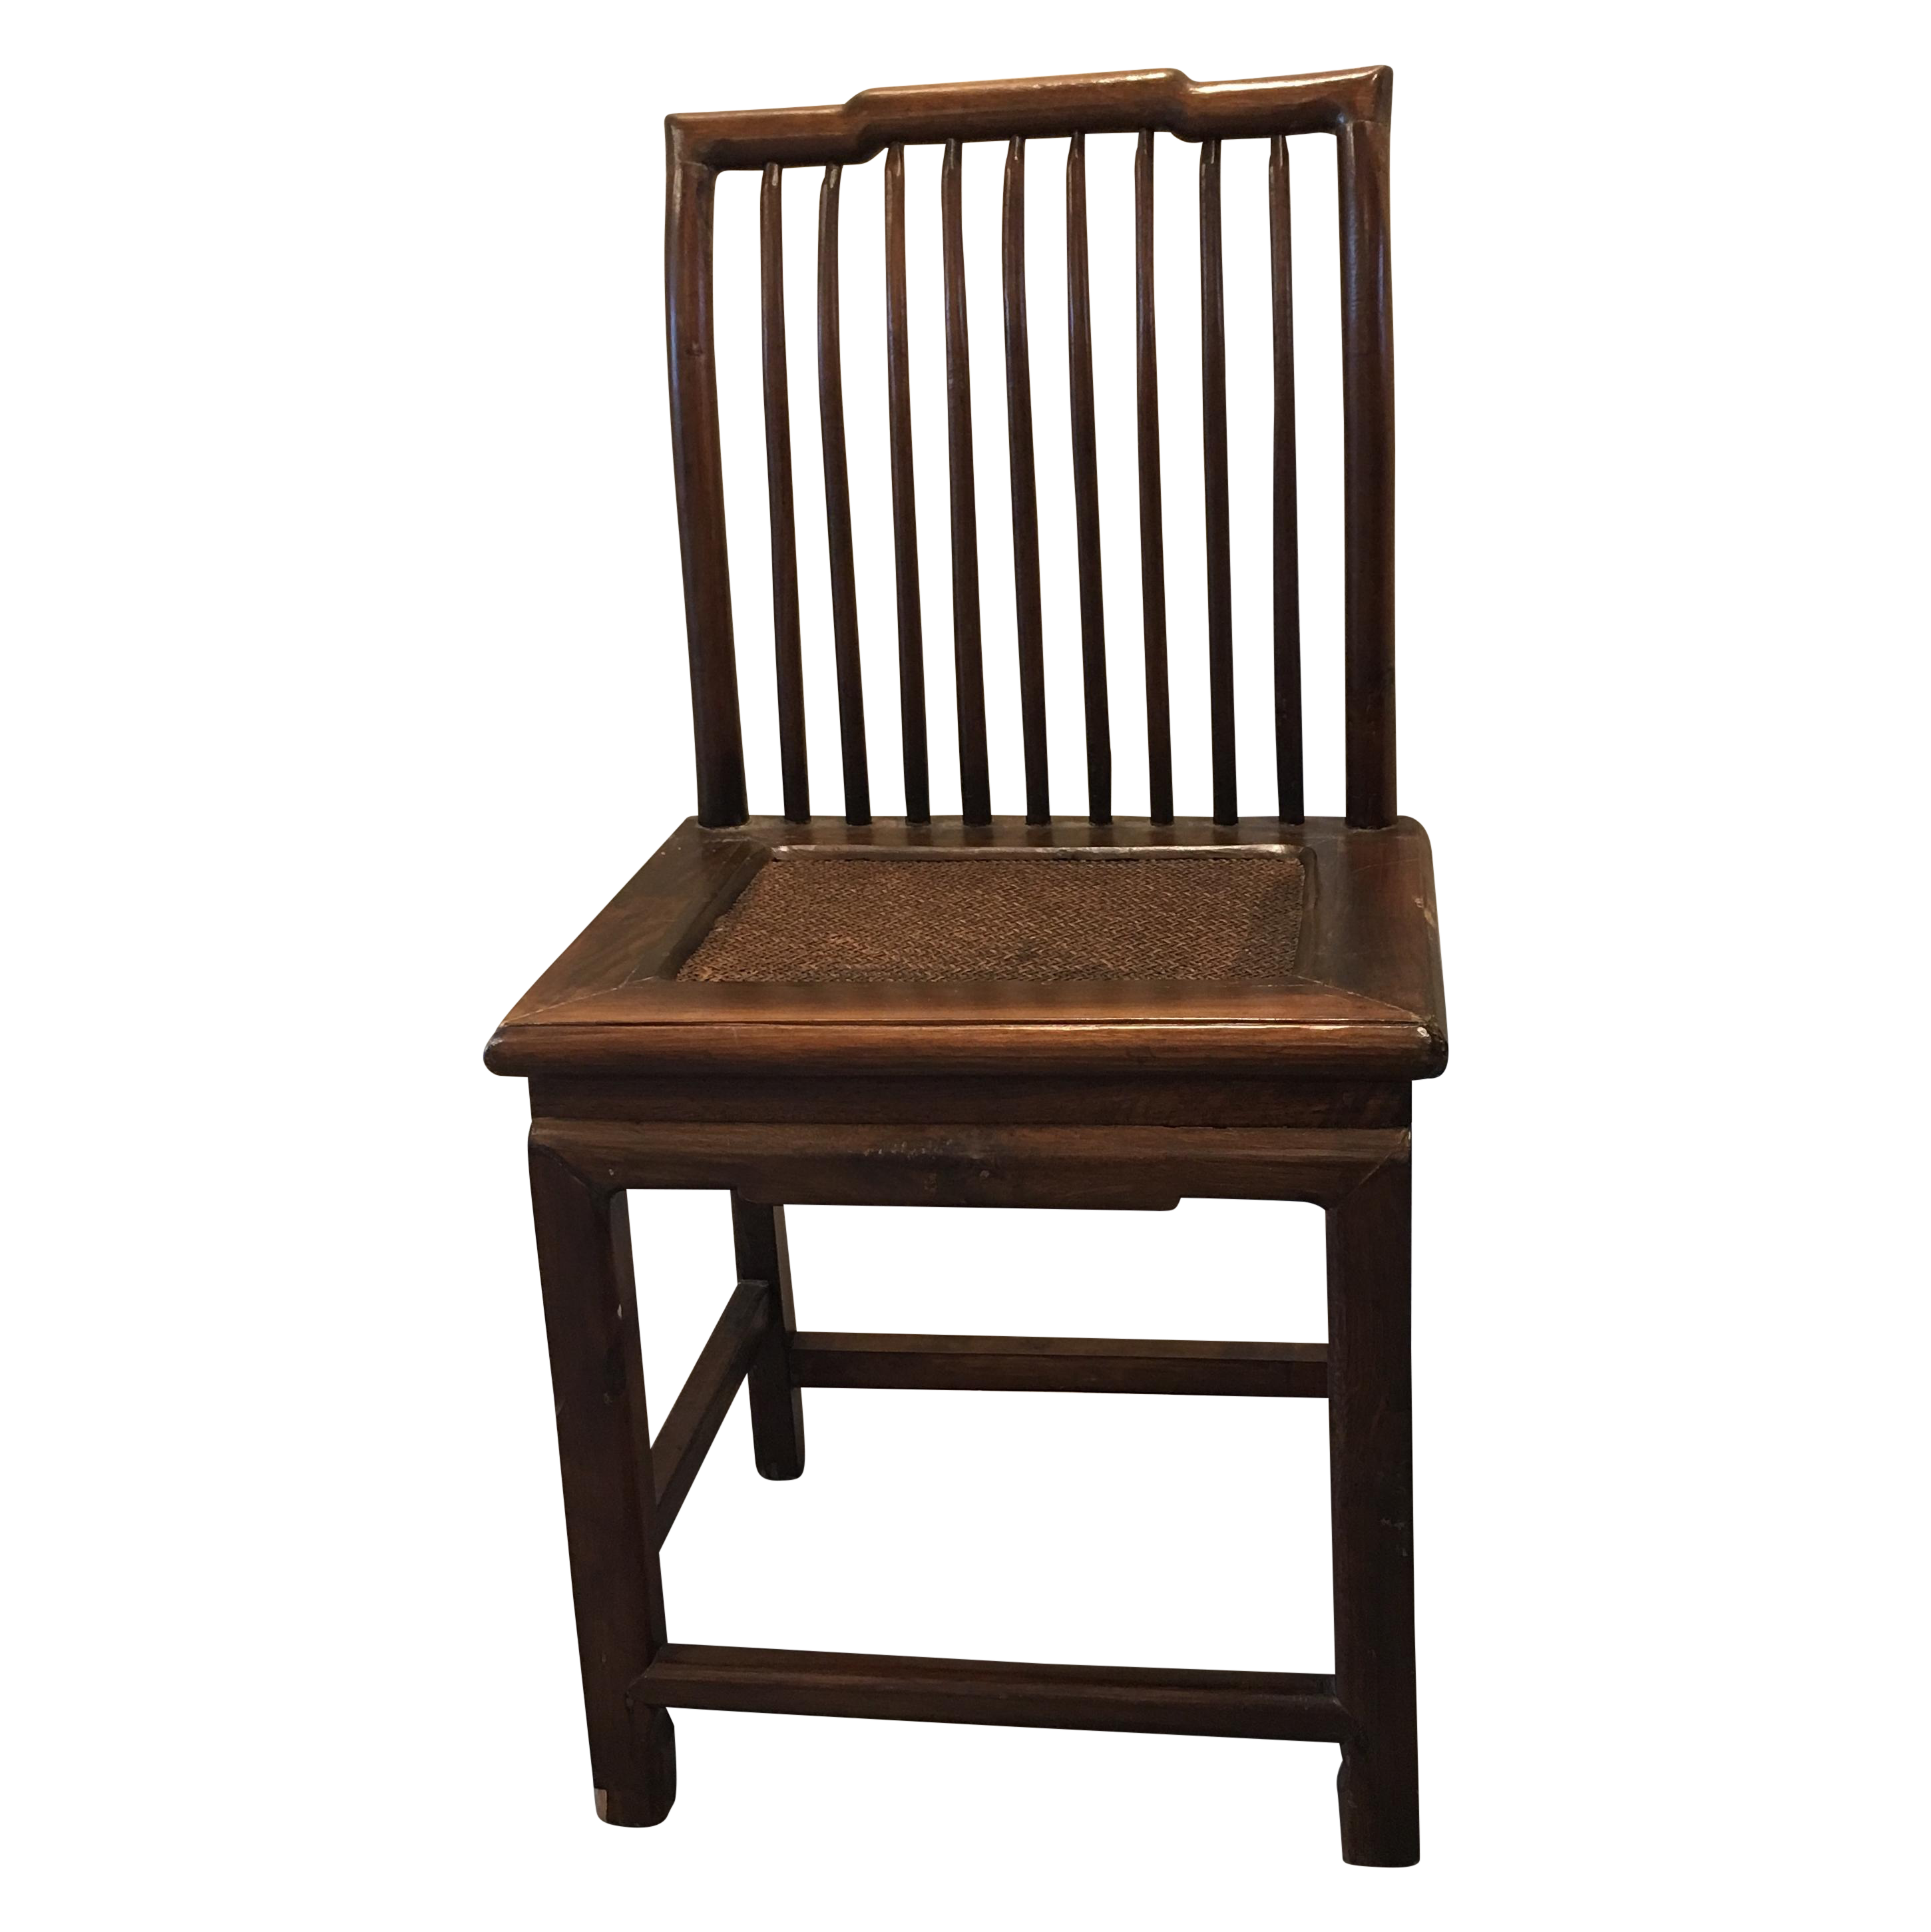 Superb img of Antique Chinese Wood & Woven Seat Side Chair Chairish with #8D603E color and 2901x2902 pixels